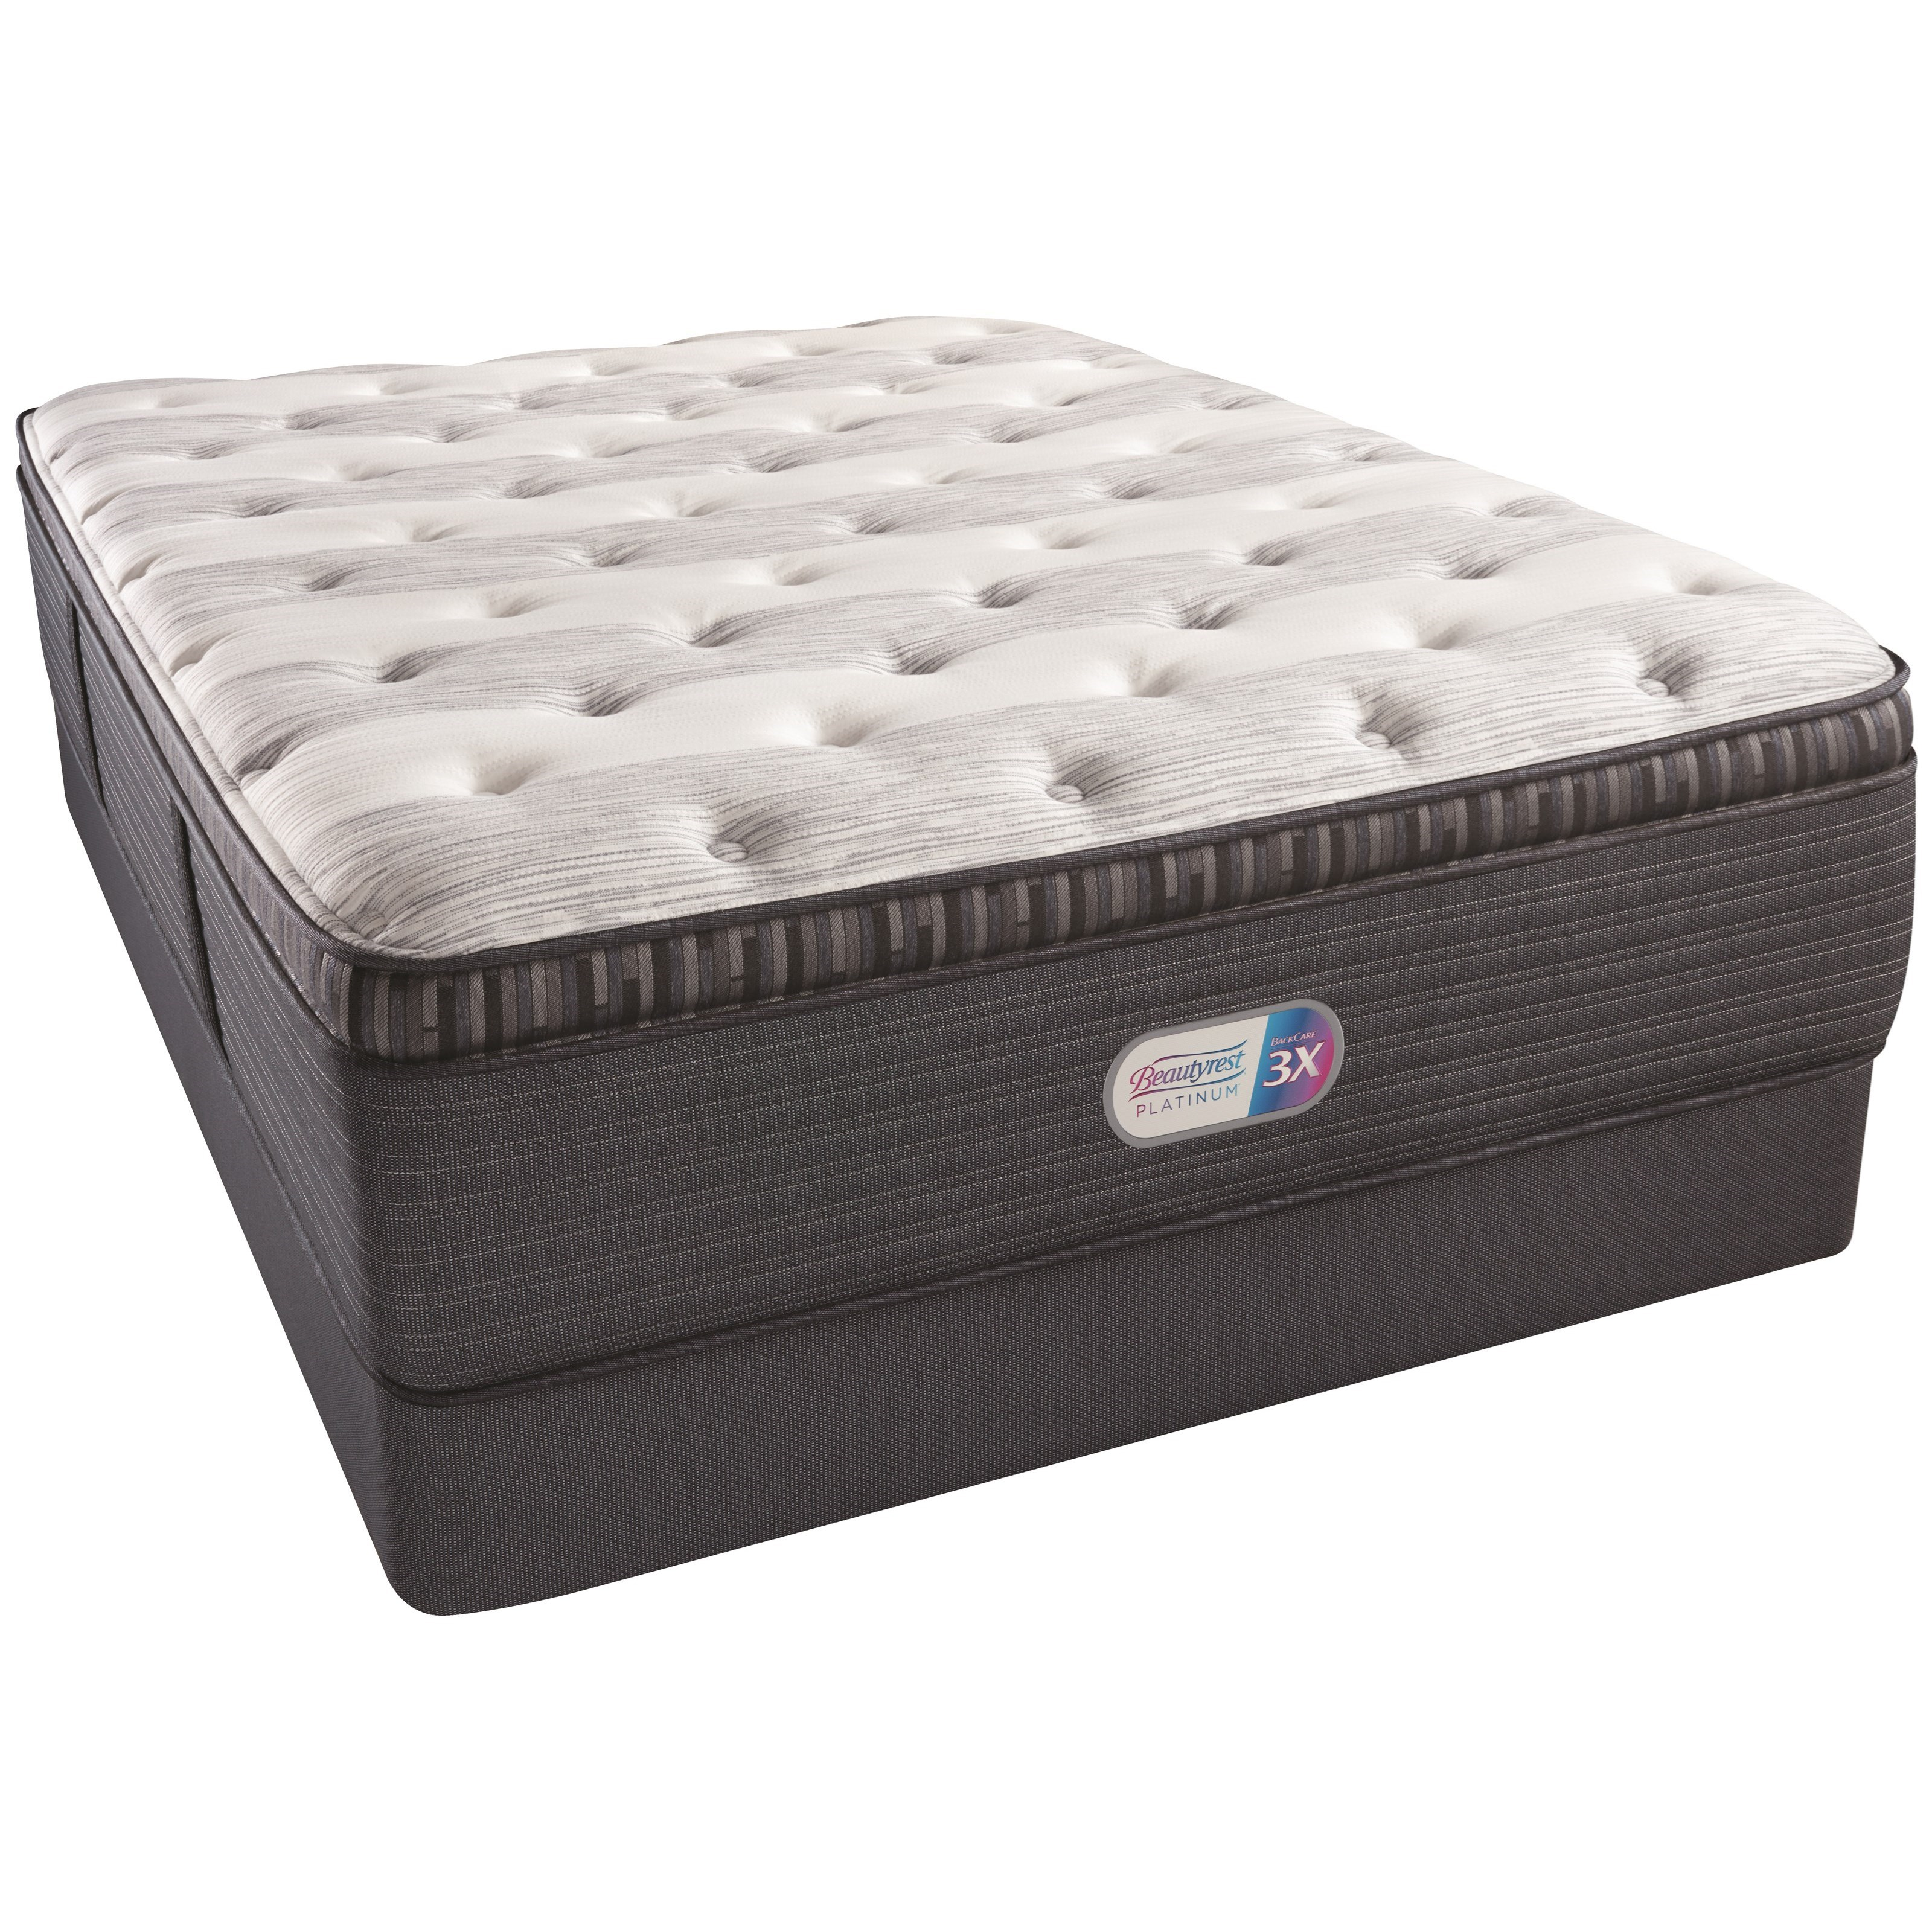 "Queen 16"" Plush PT Coil on Coil Mattress Set"